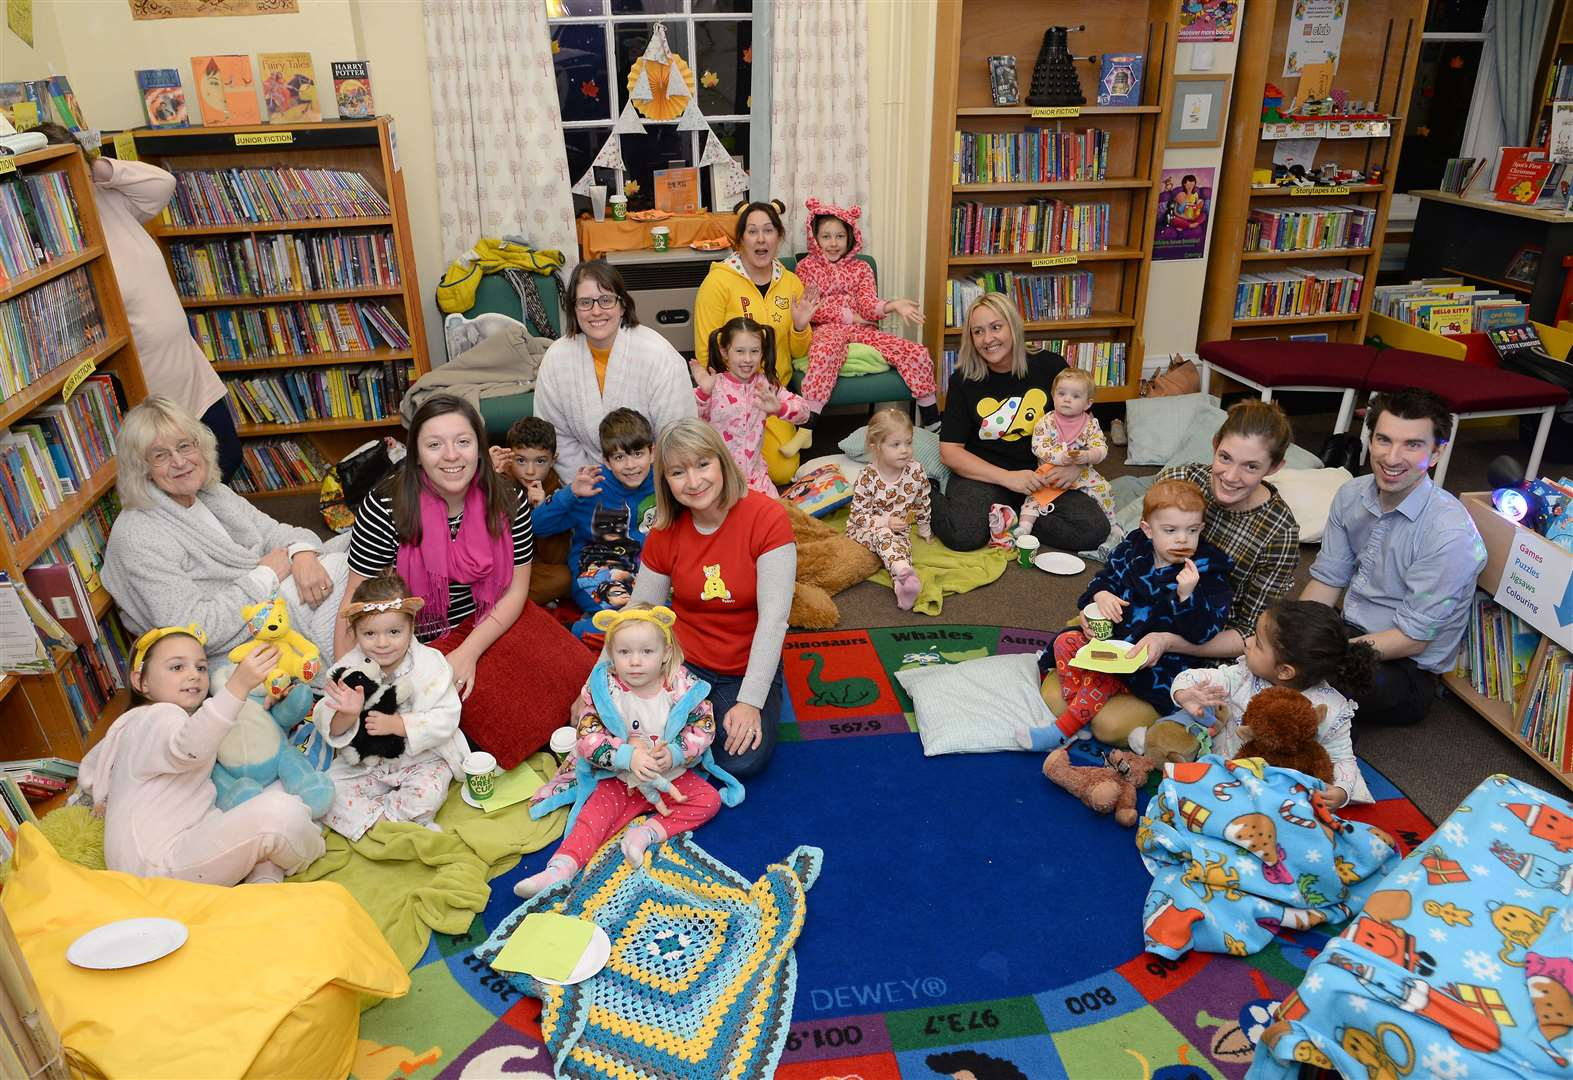 Snuggle for Pudsey storytime held at the Deepings Community Library to raise money for Children in Need